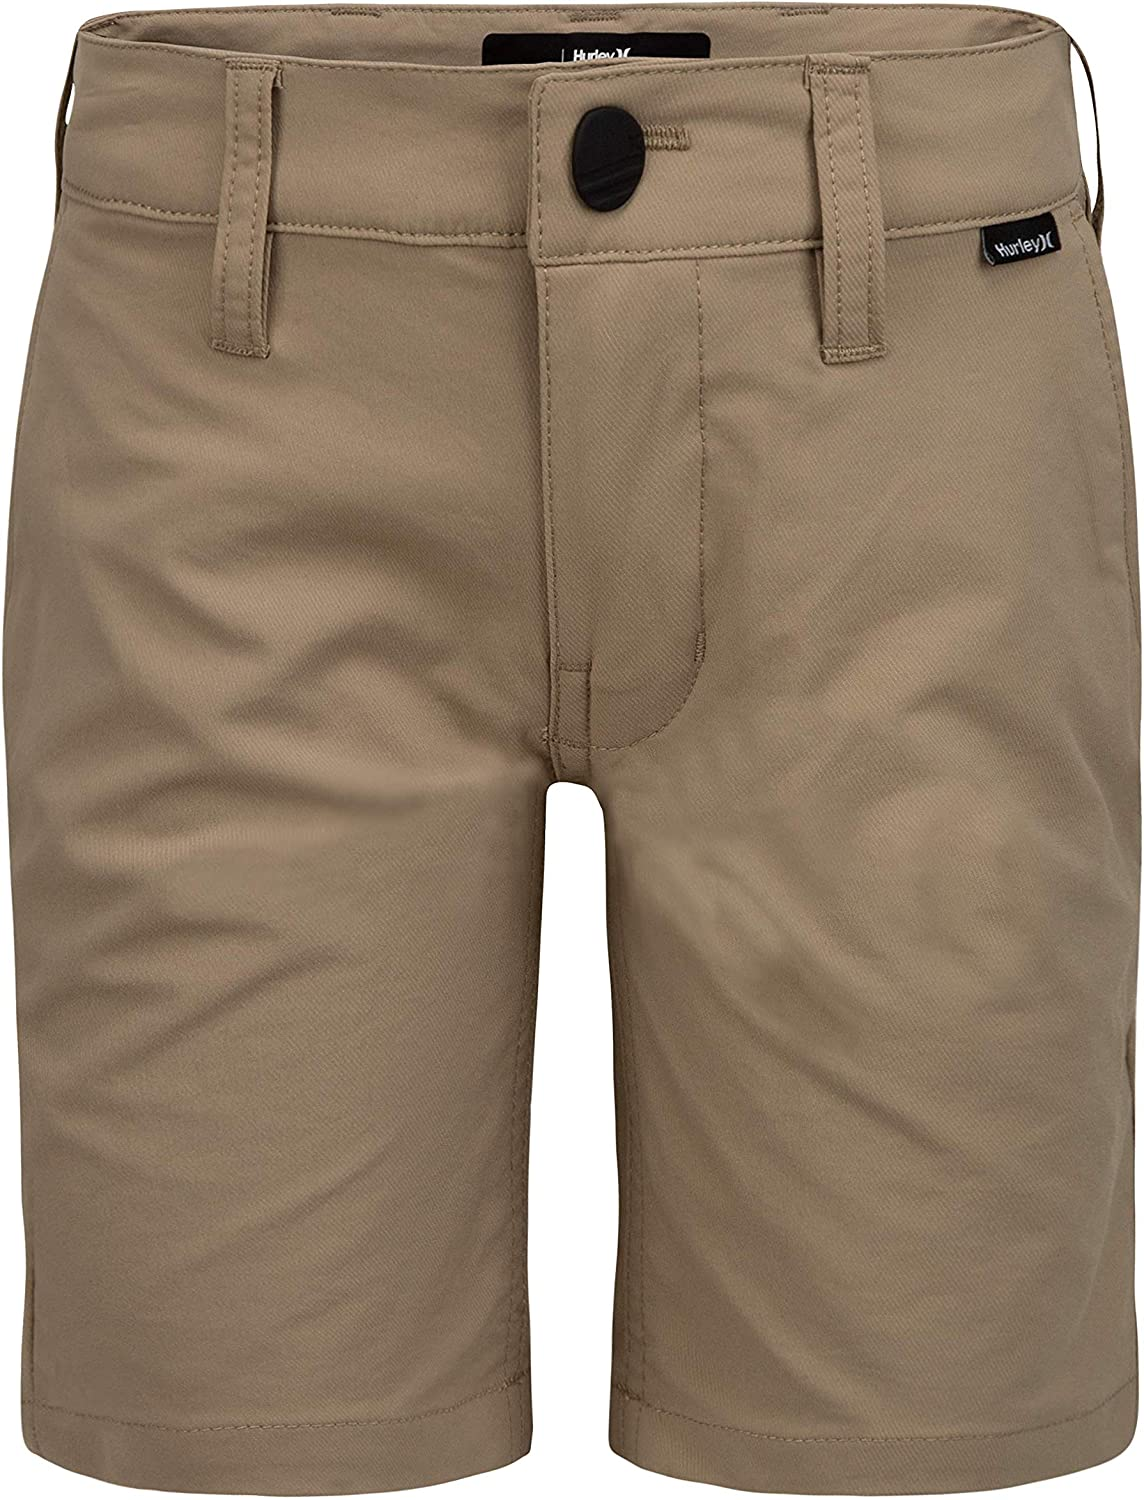 Hurley Boys' Outlet SALE Max 69% OFF Dri-fit Shorts Walk